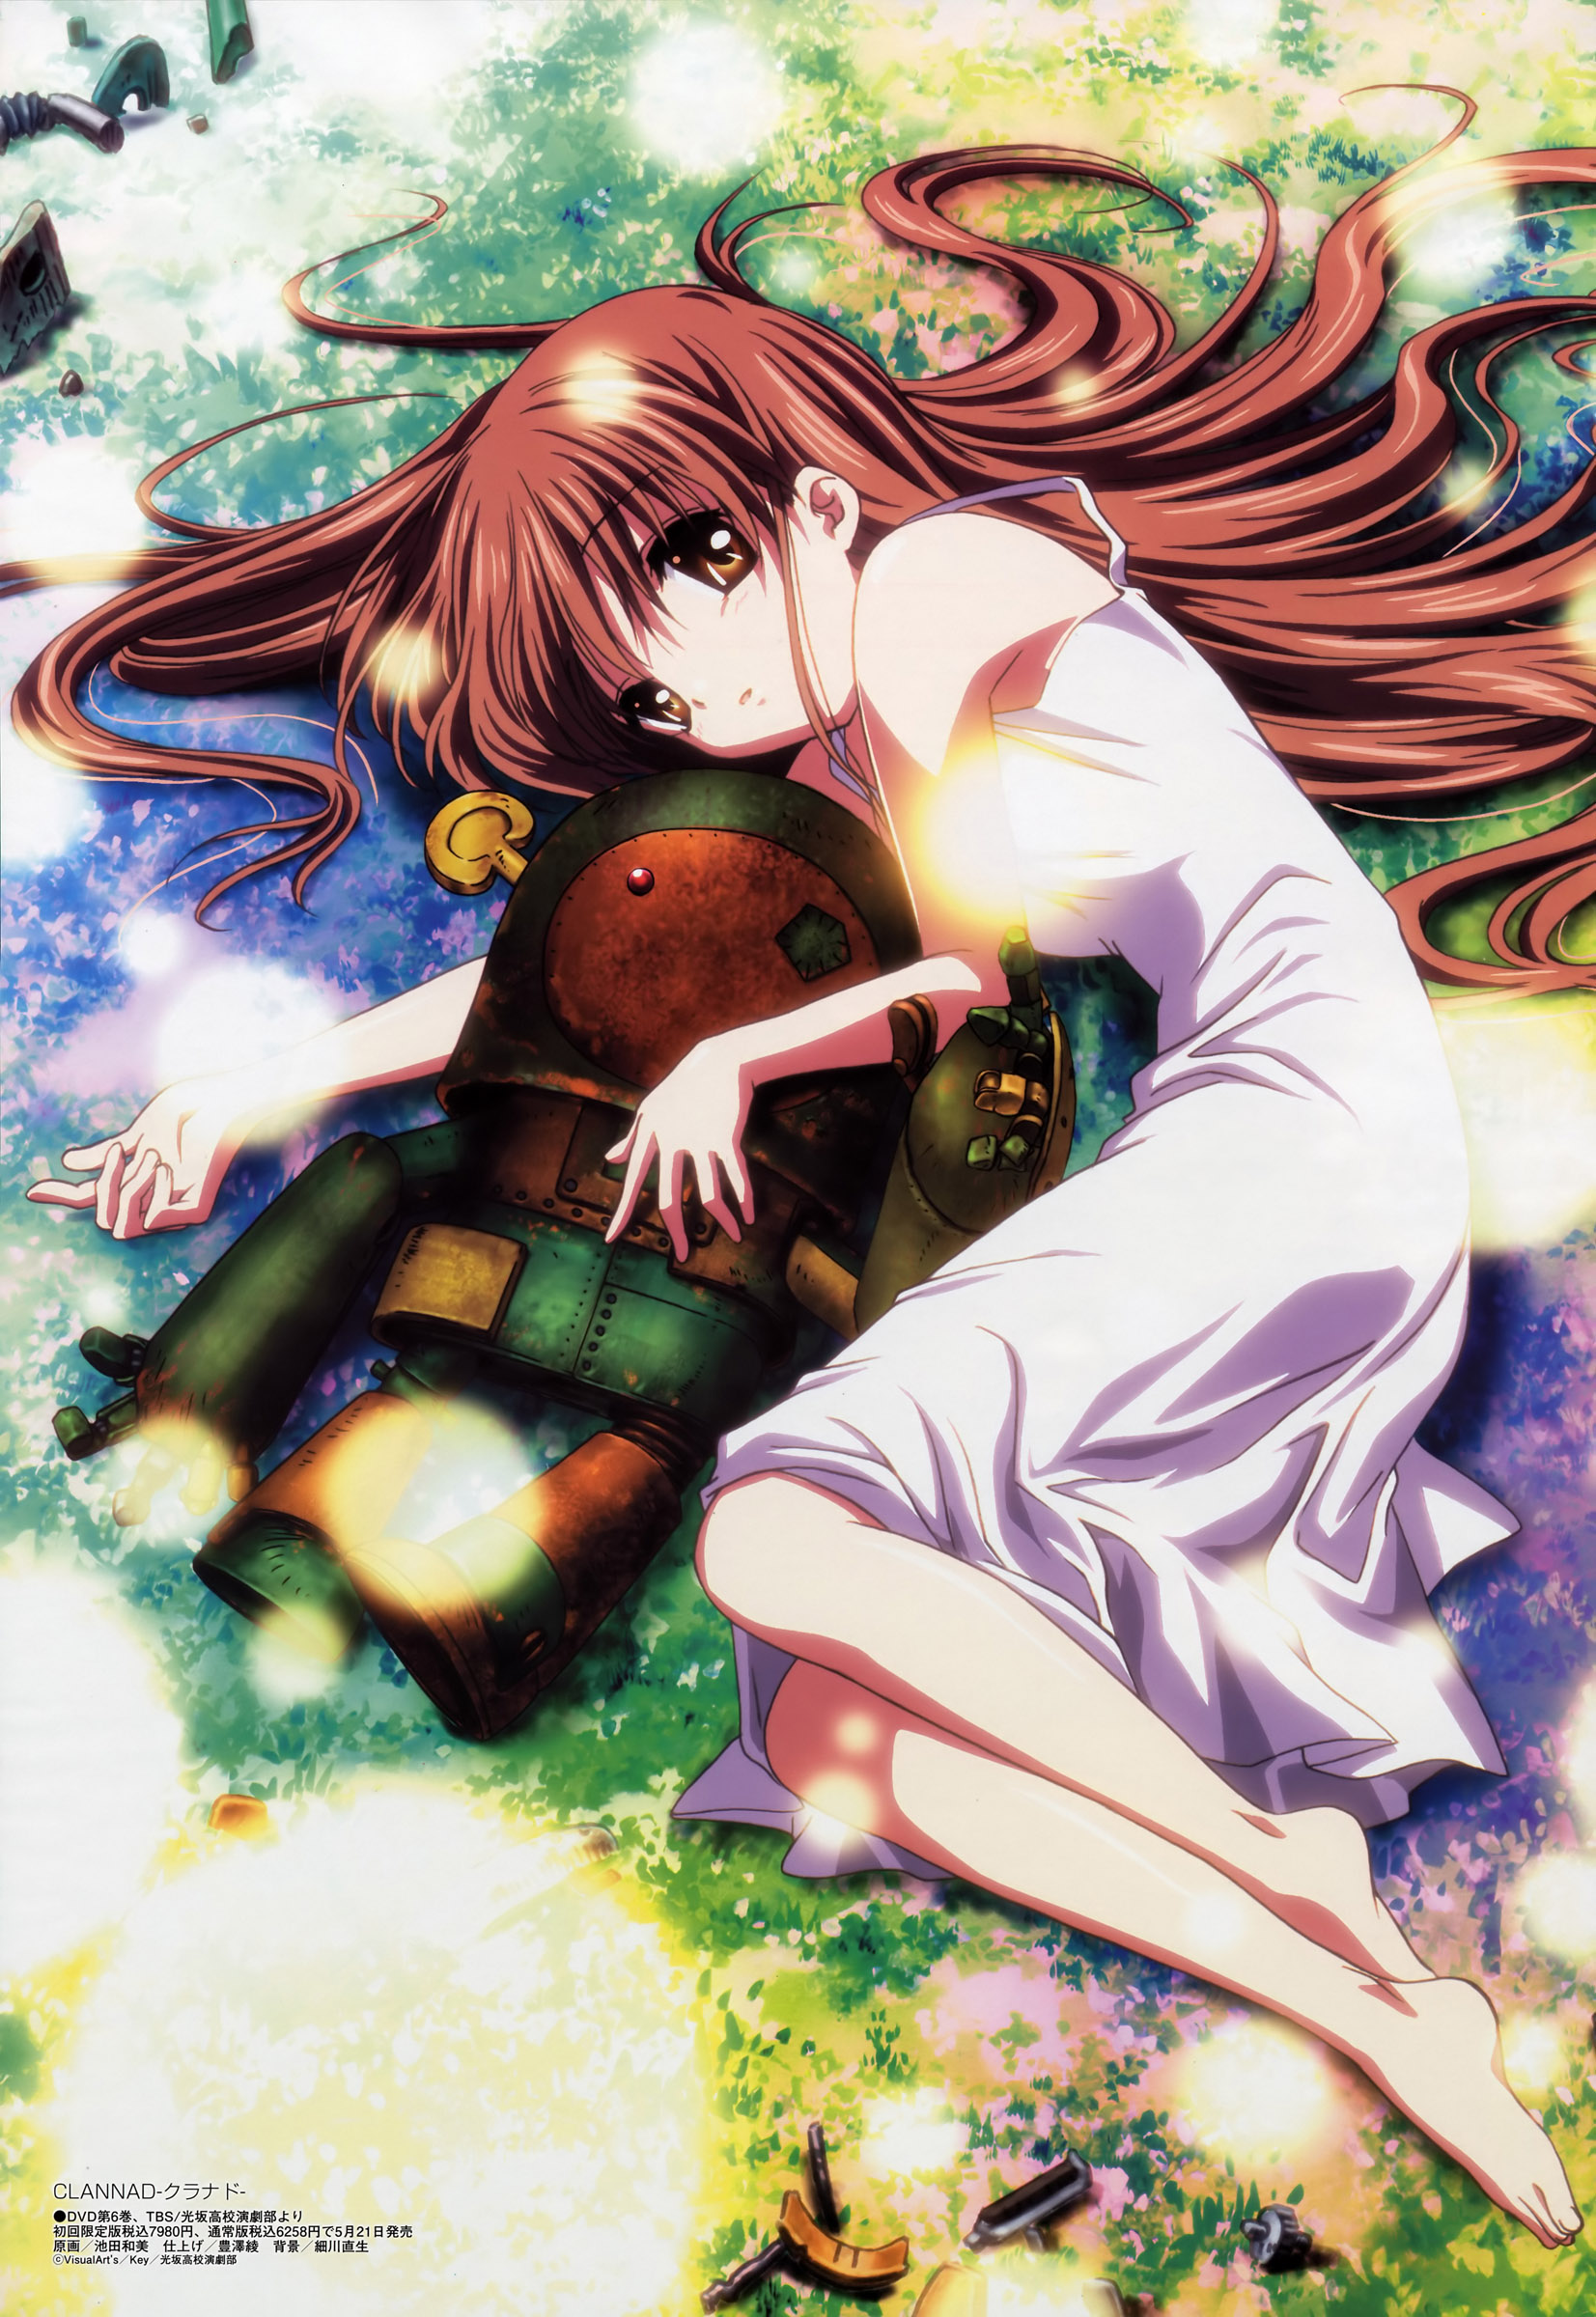 Anime Girl Hd Wallpaper For Android Clannad Zerochan Anime Image Board